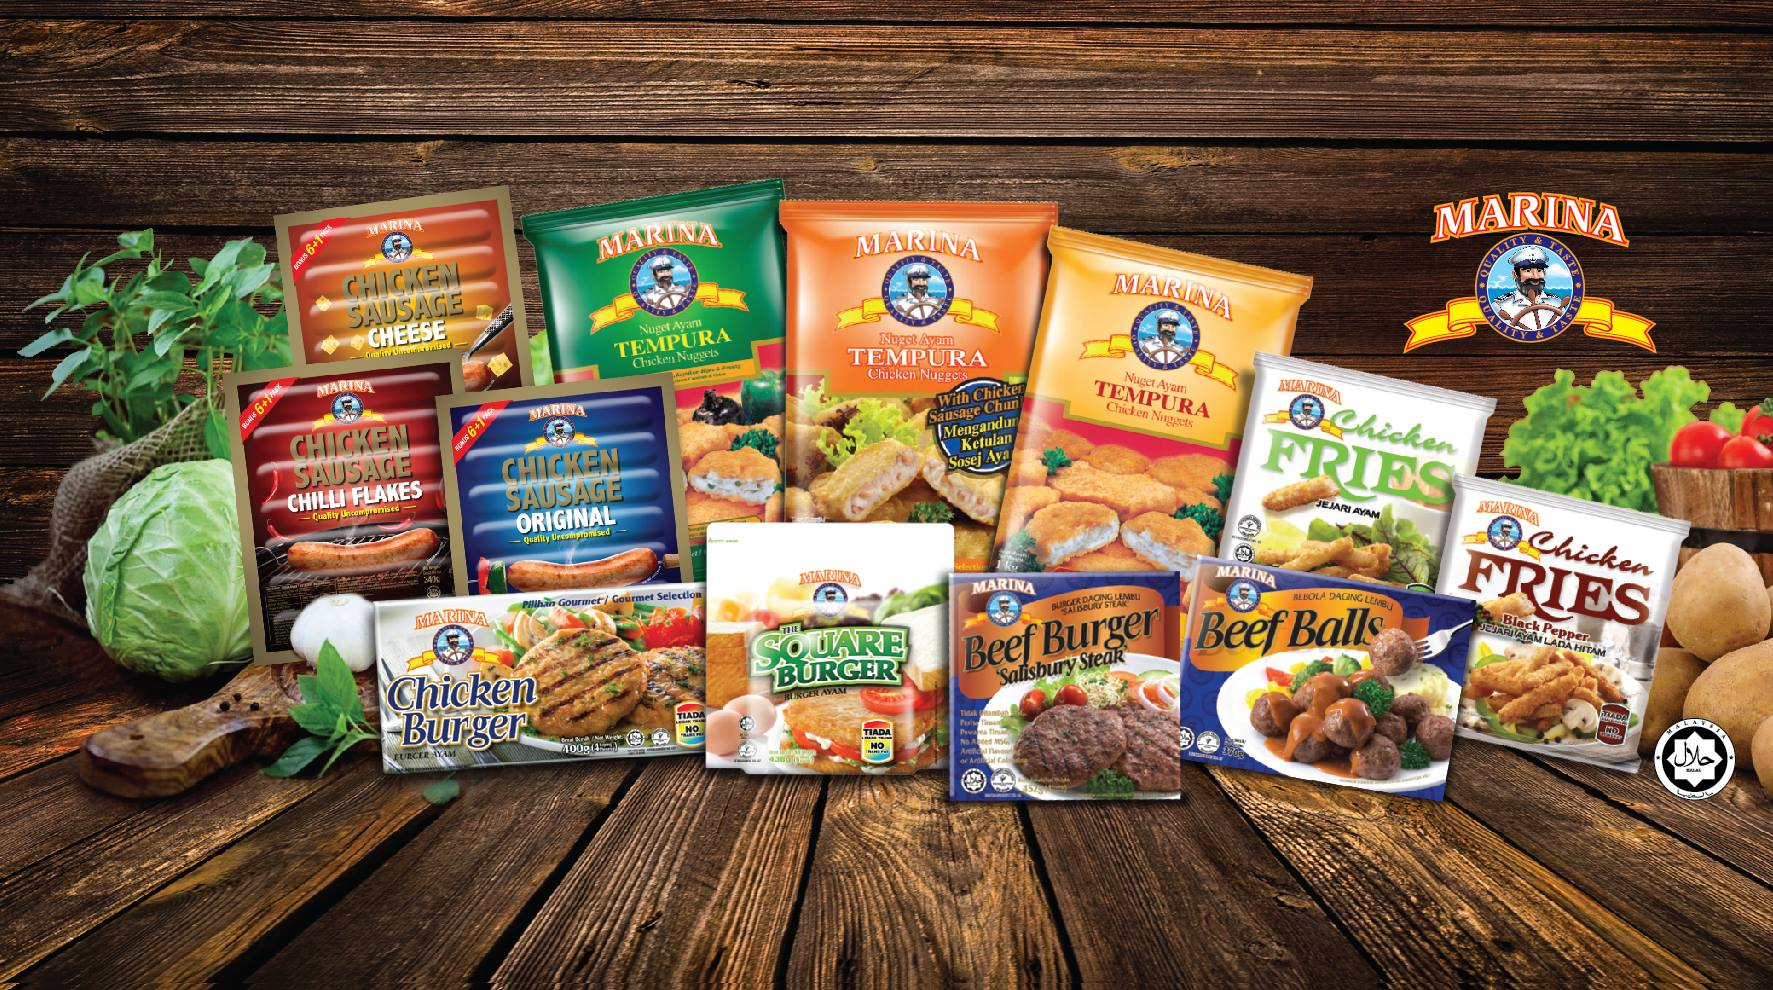 Image from Marina Frozen Food Facebook